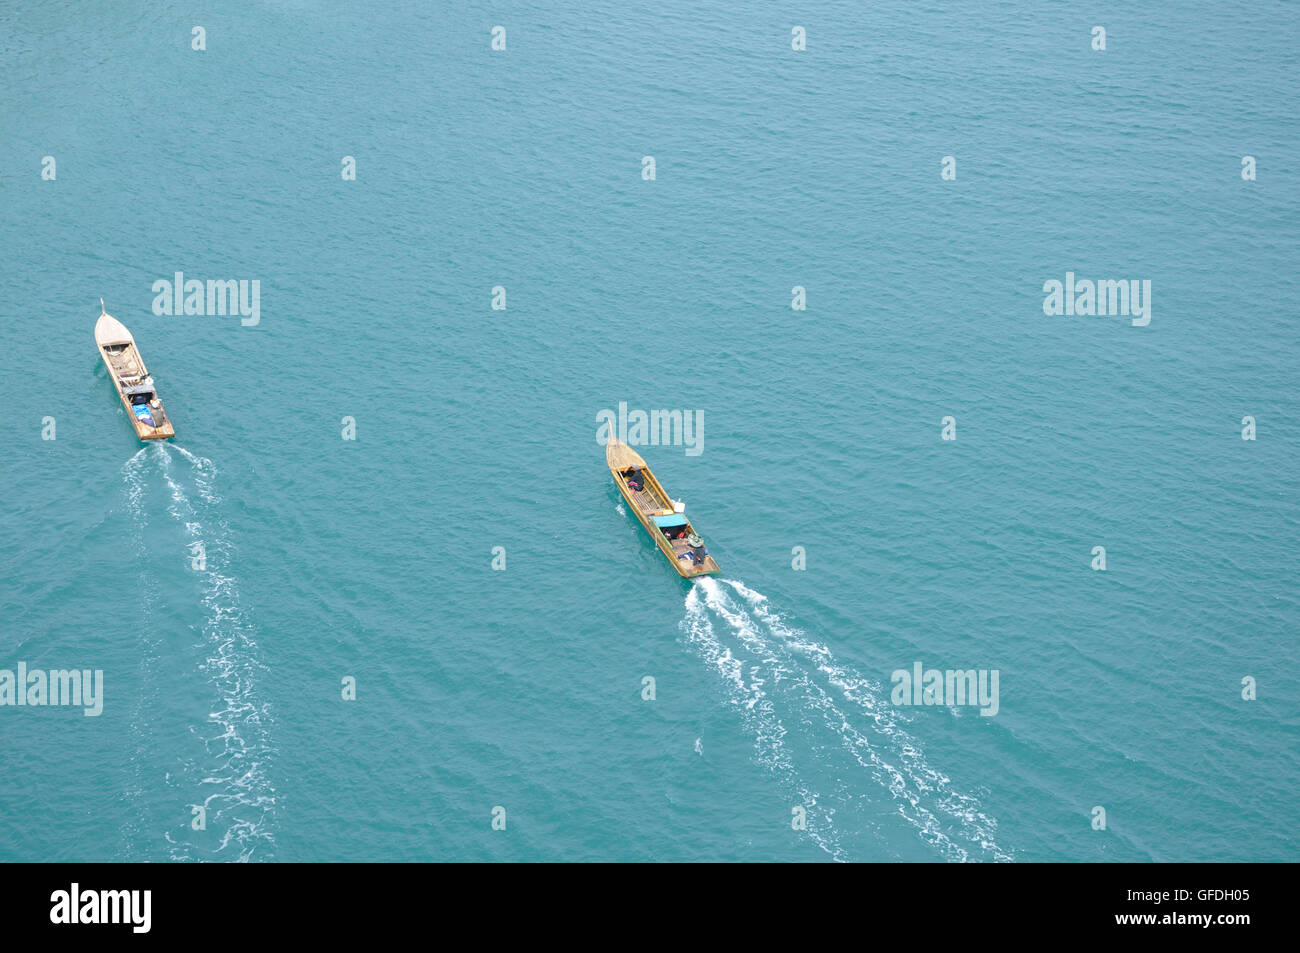 Fishing Boats in the South China Sea - Stock Image